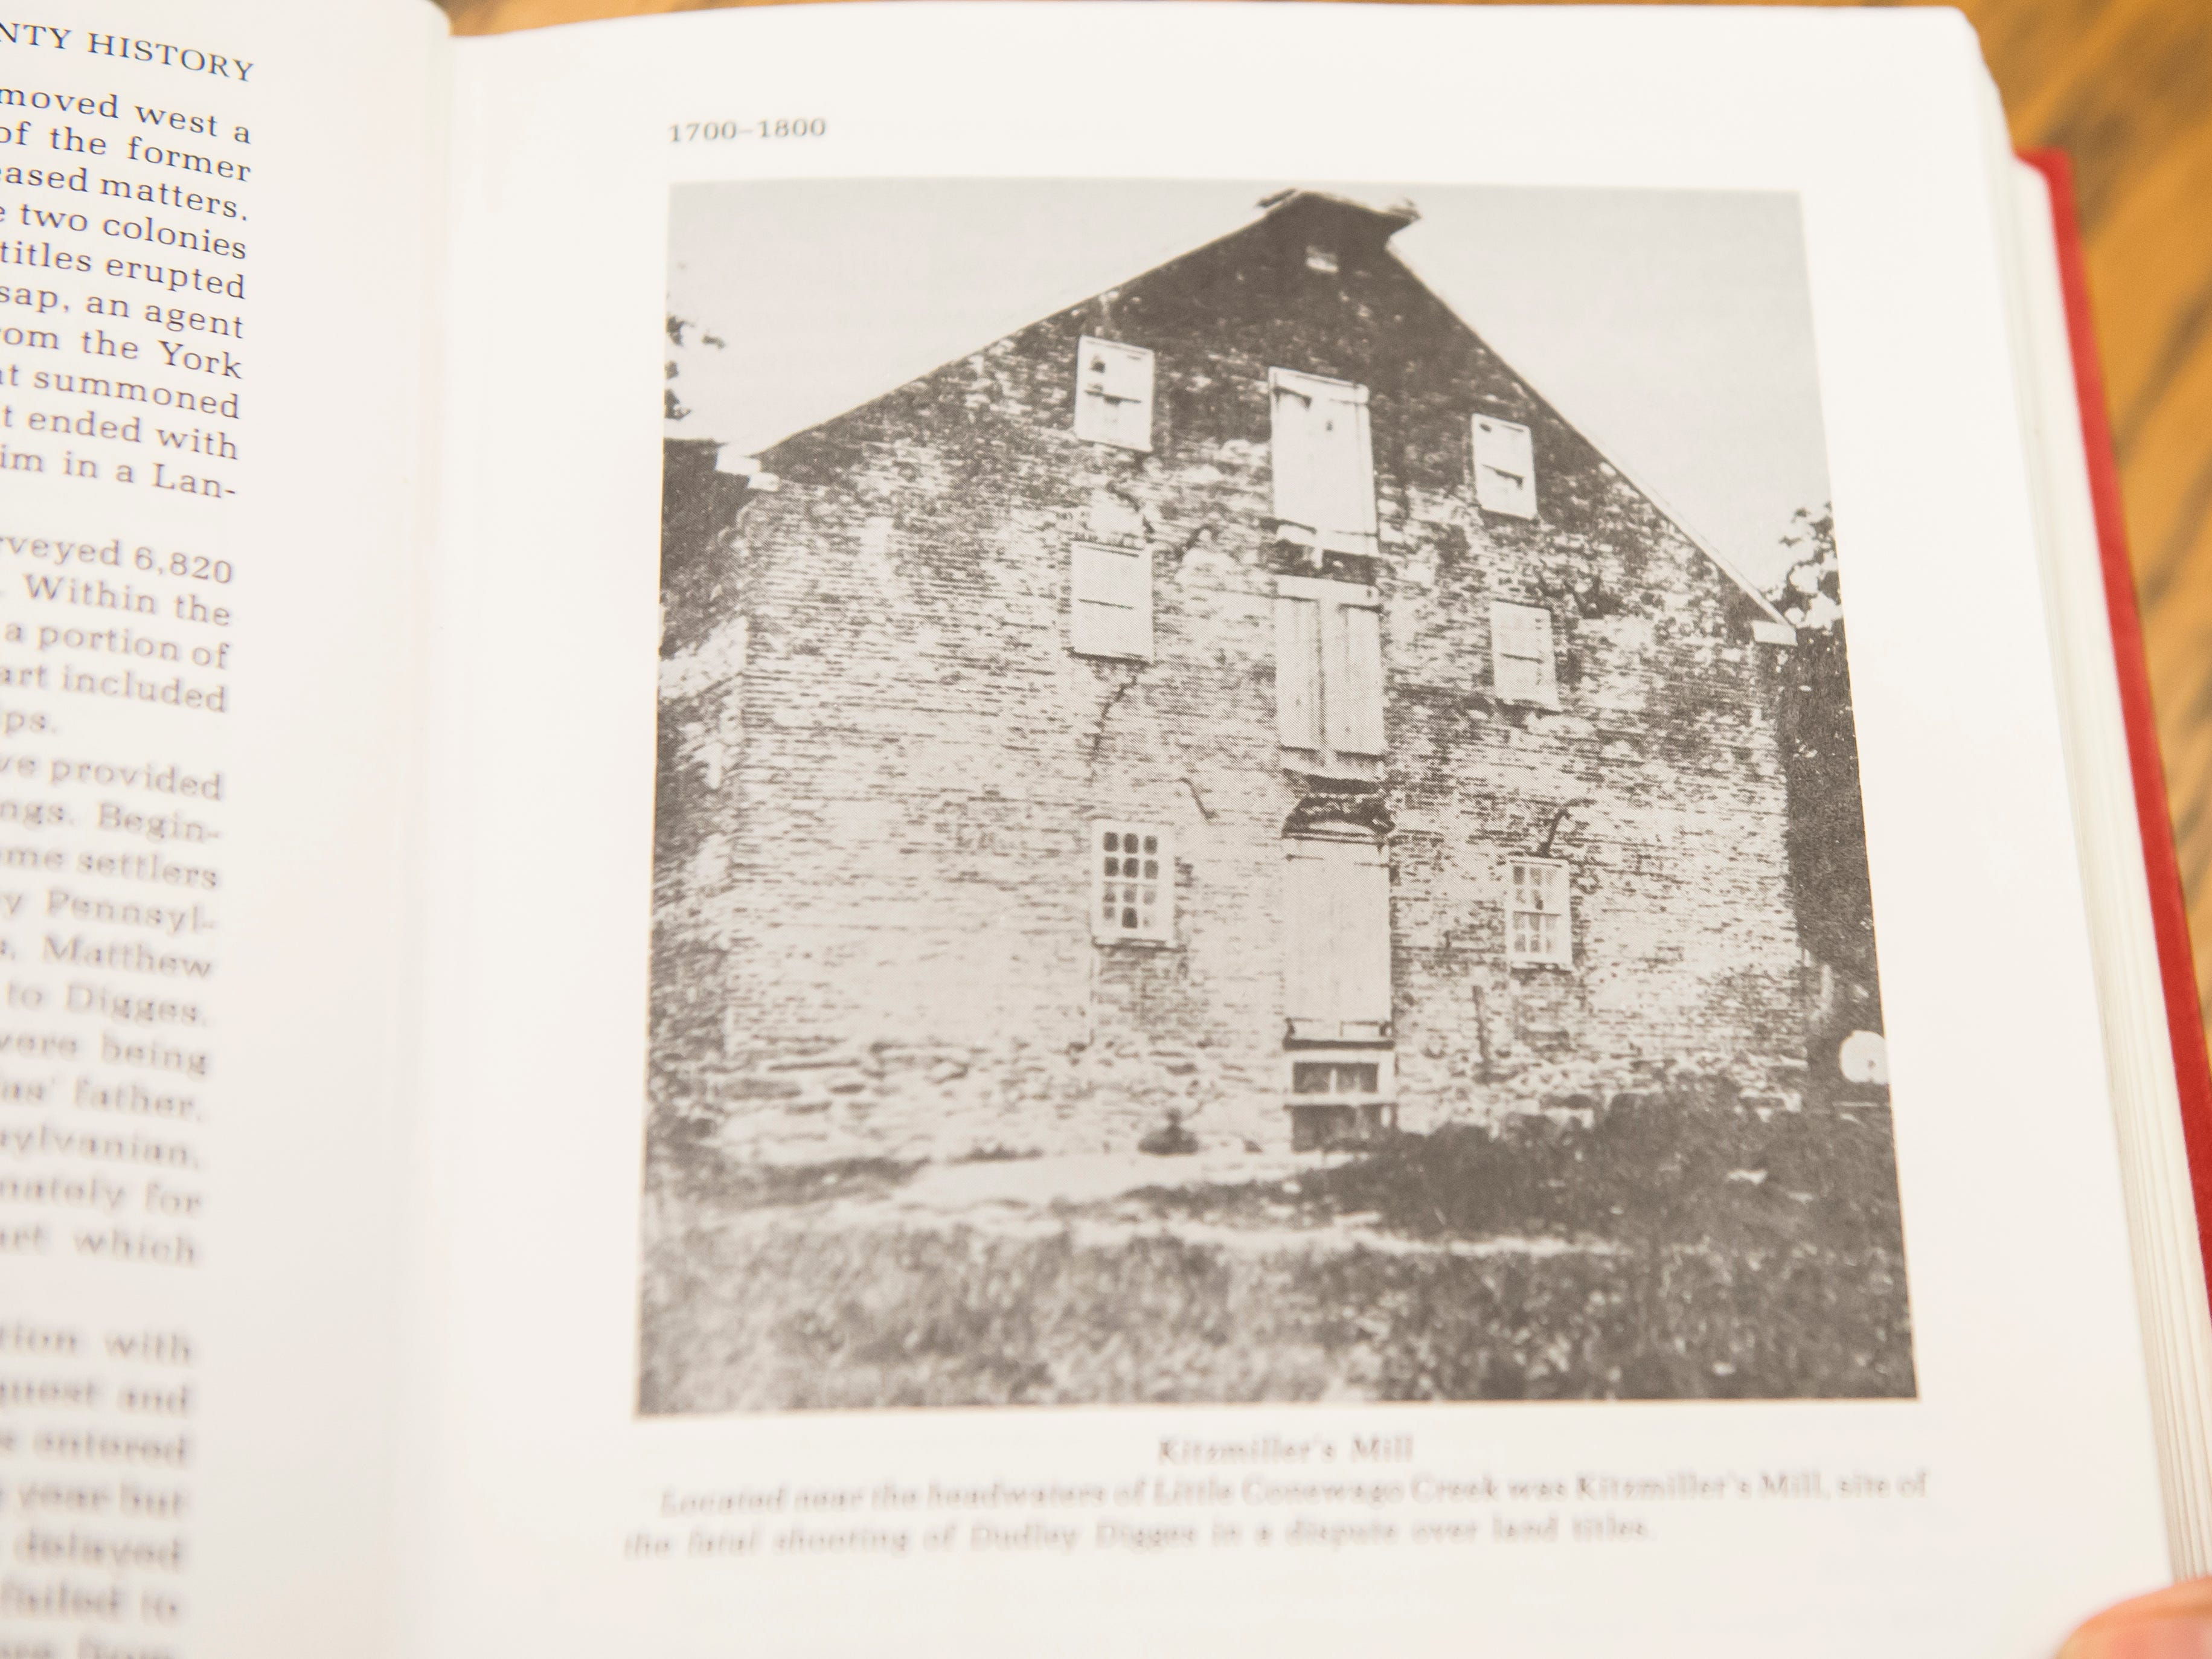 A photograph of the Kitzmiller's Mill, taken sometime in the late 19th century.